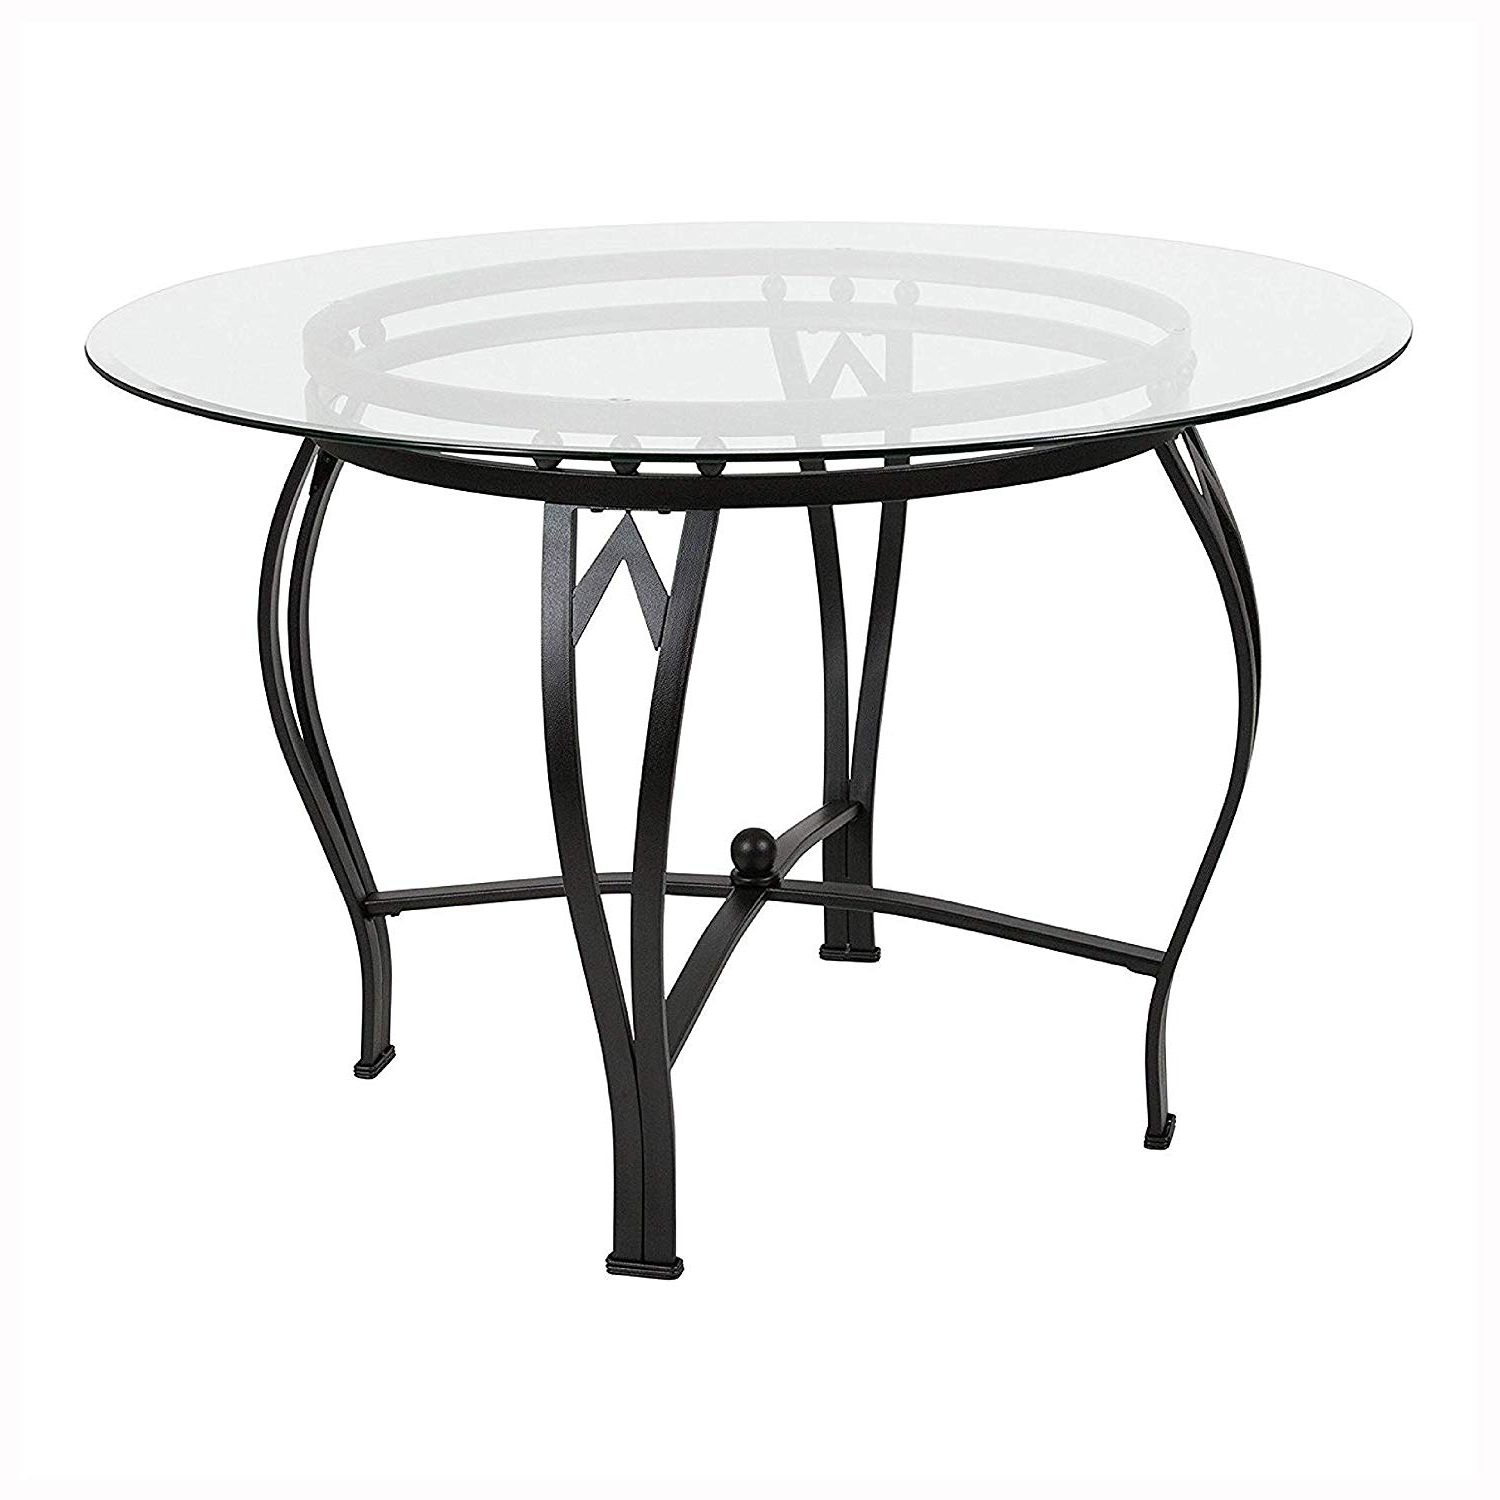 Amazon – Dining Tables, Modern 45 Inch Round Glass Top With Regard To Popular Modern Round Glass Top Dining Tables (View 9 of 25)